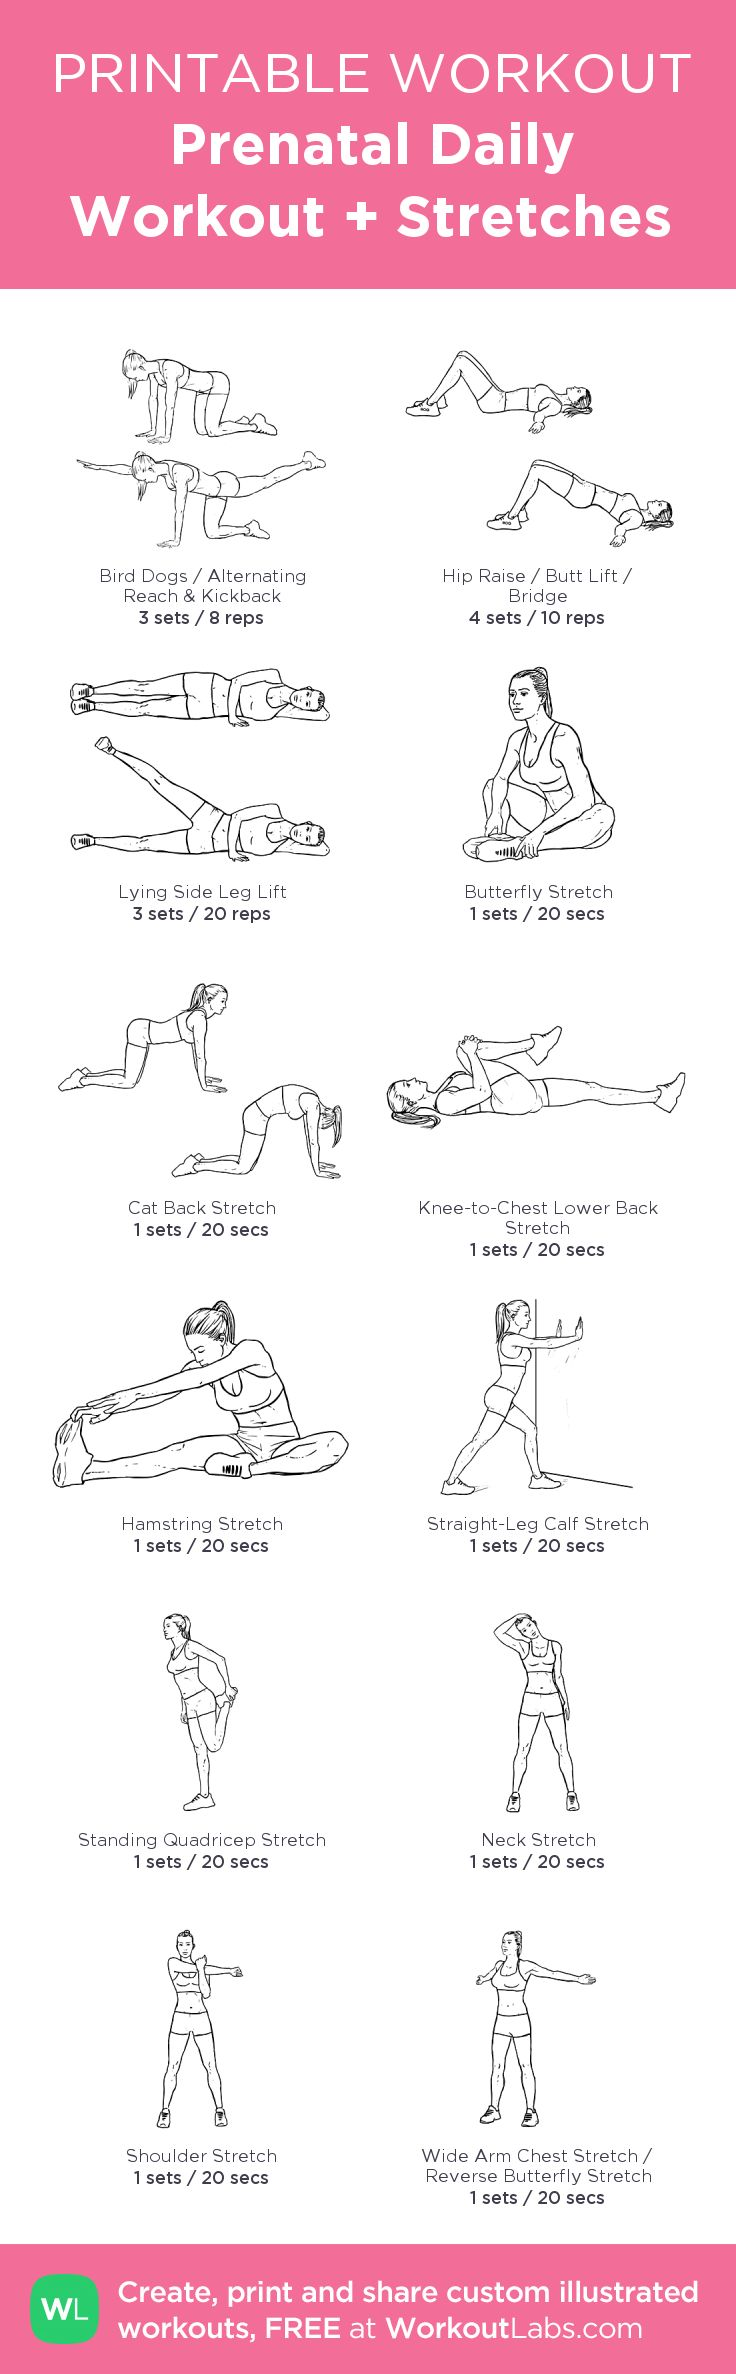 Prenatal Daily Workout + Stretches: my visual workout created at WorkoutLabs.com • Click through to customize and download as a FREE PDF! #customworkout